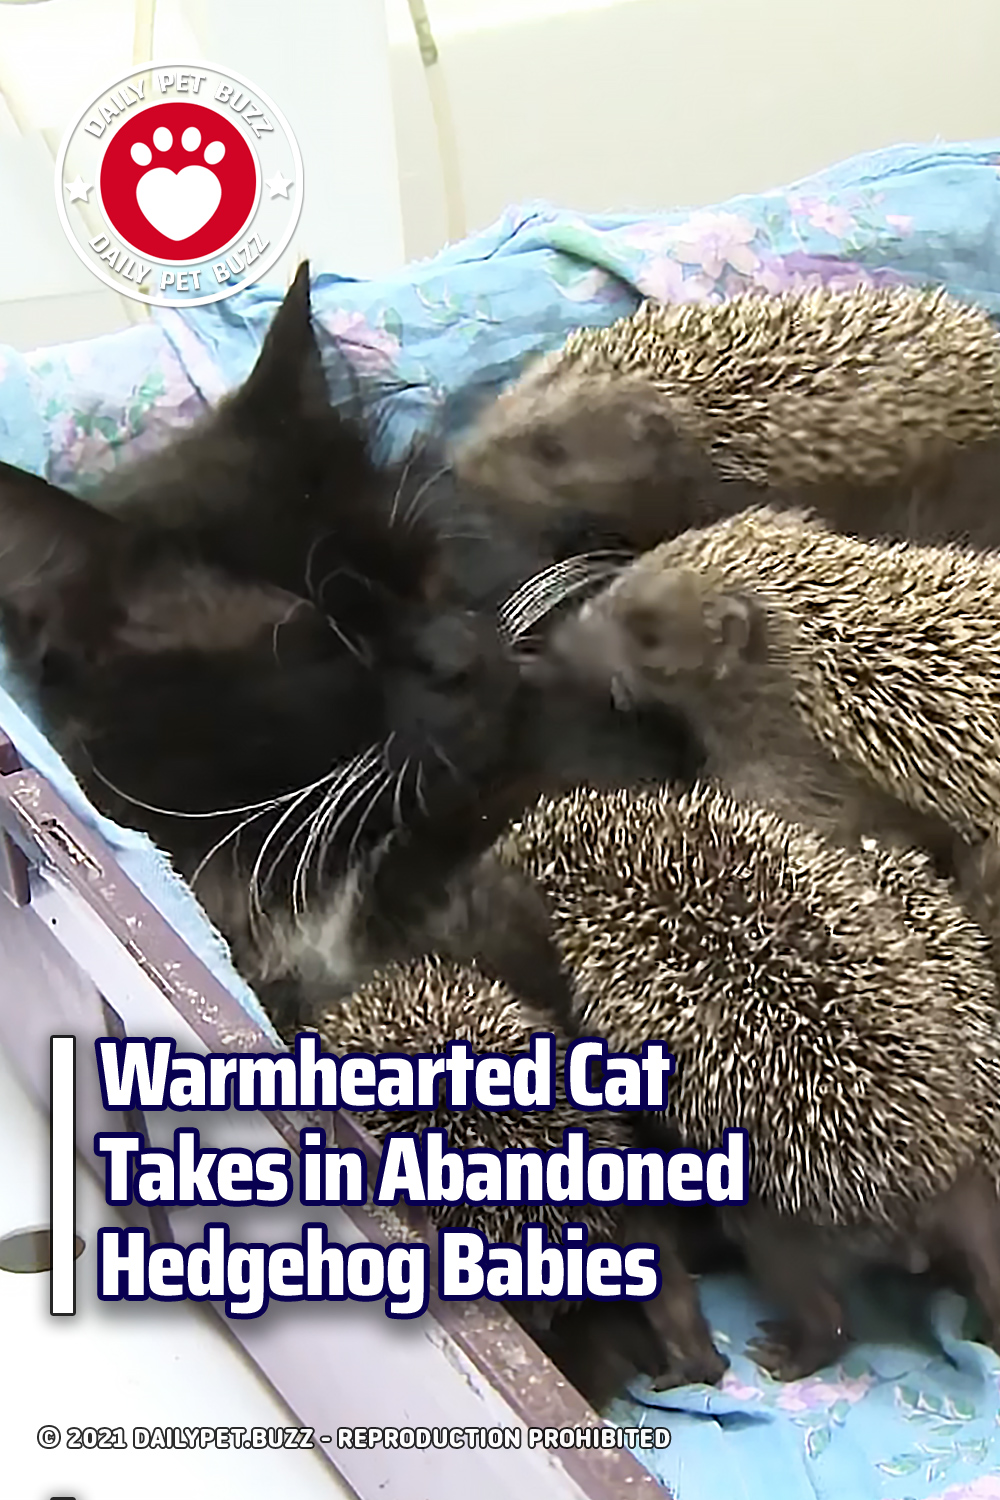 Warmhearted Cat Takes in Abandoned Hedgehog Babies